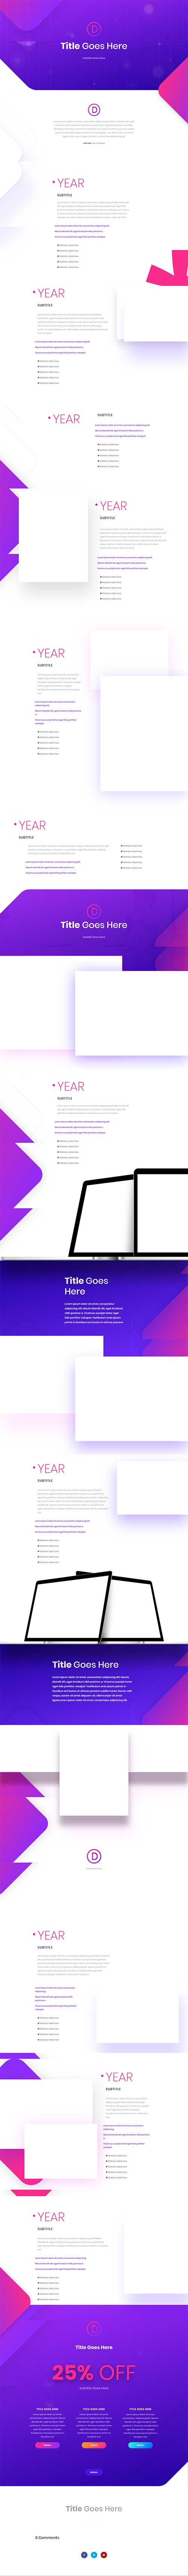 free divi timeline layout from Elegant Themes